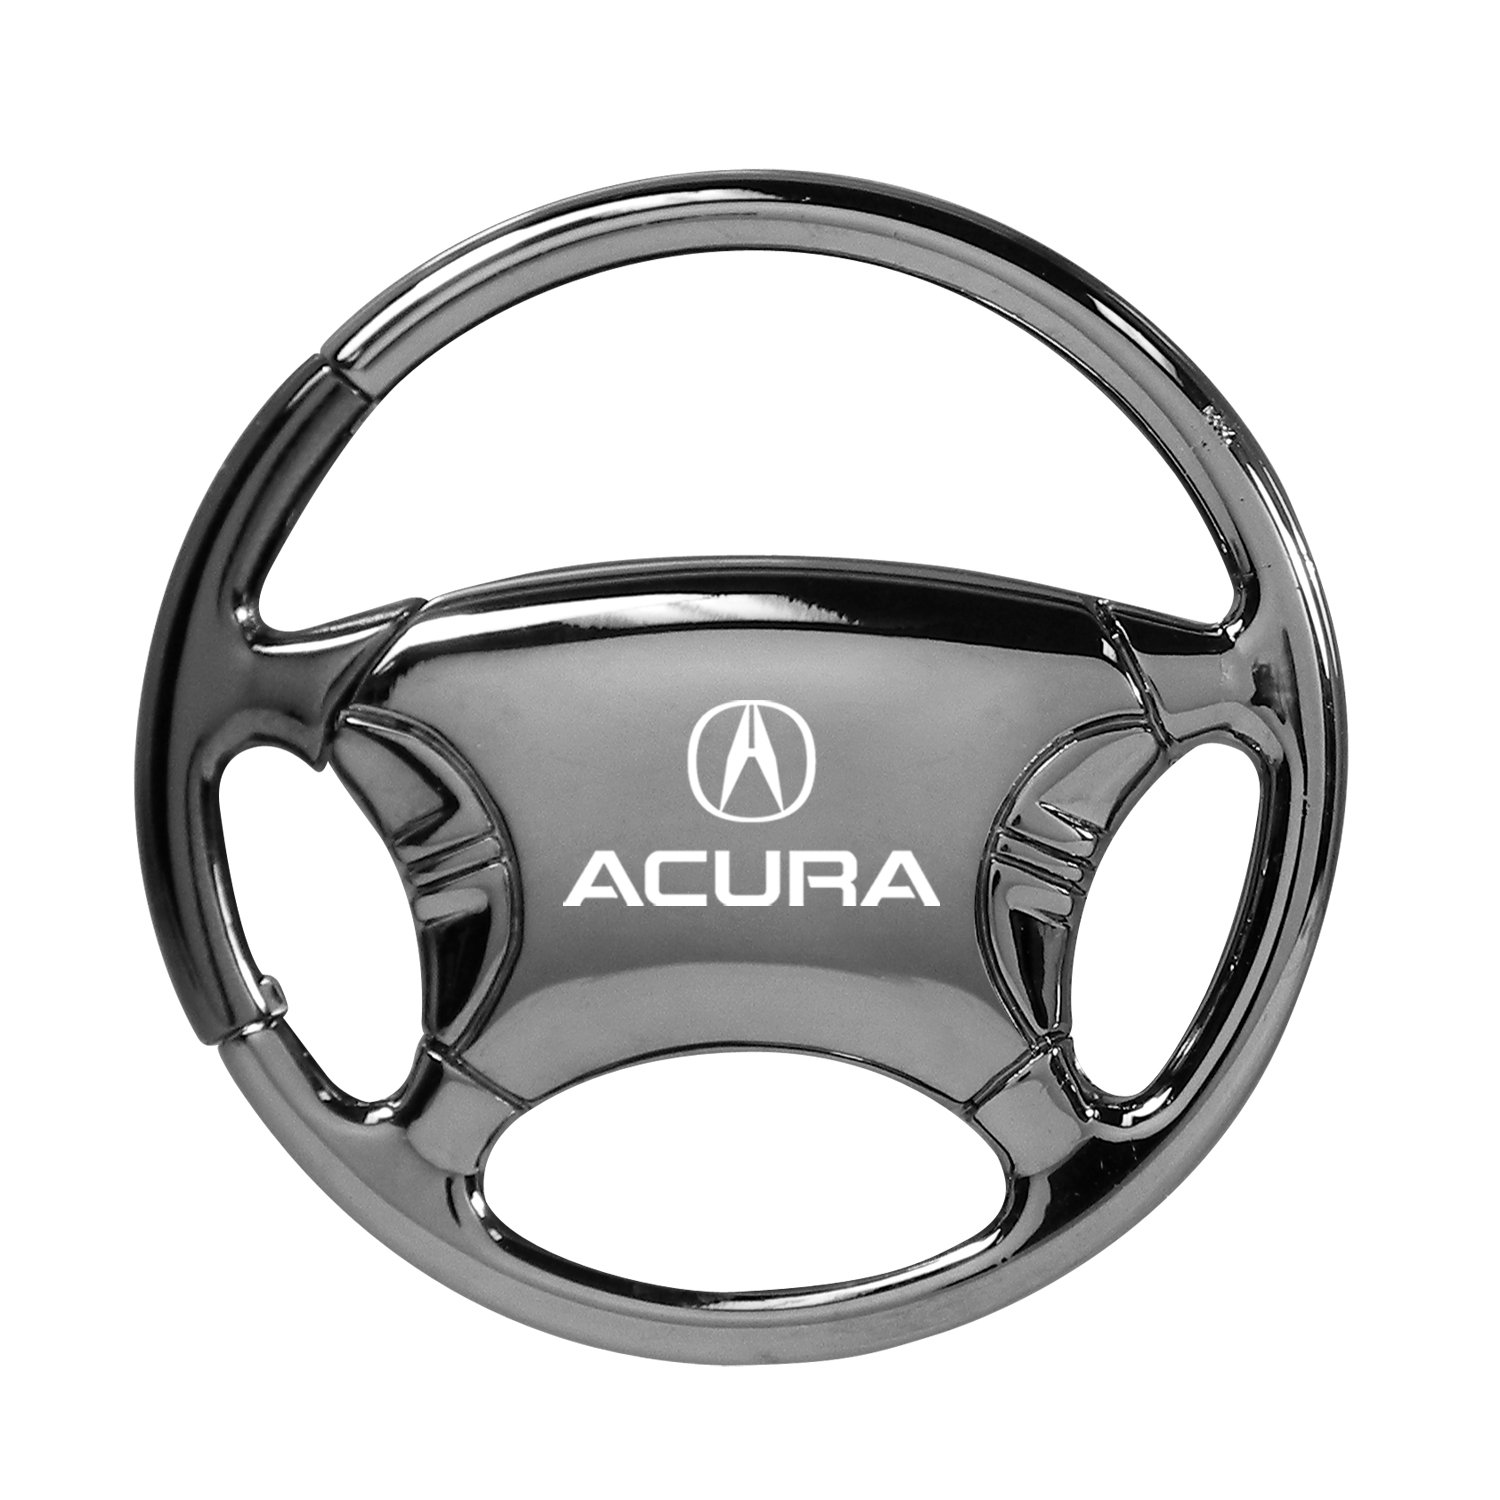 Acura Black Chrome Steering Wheel Key Chain Au-Tomotive Gold INC